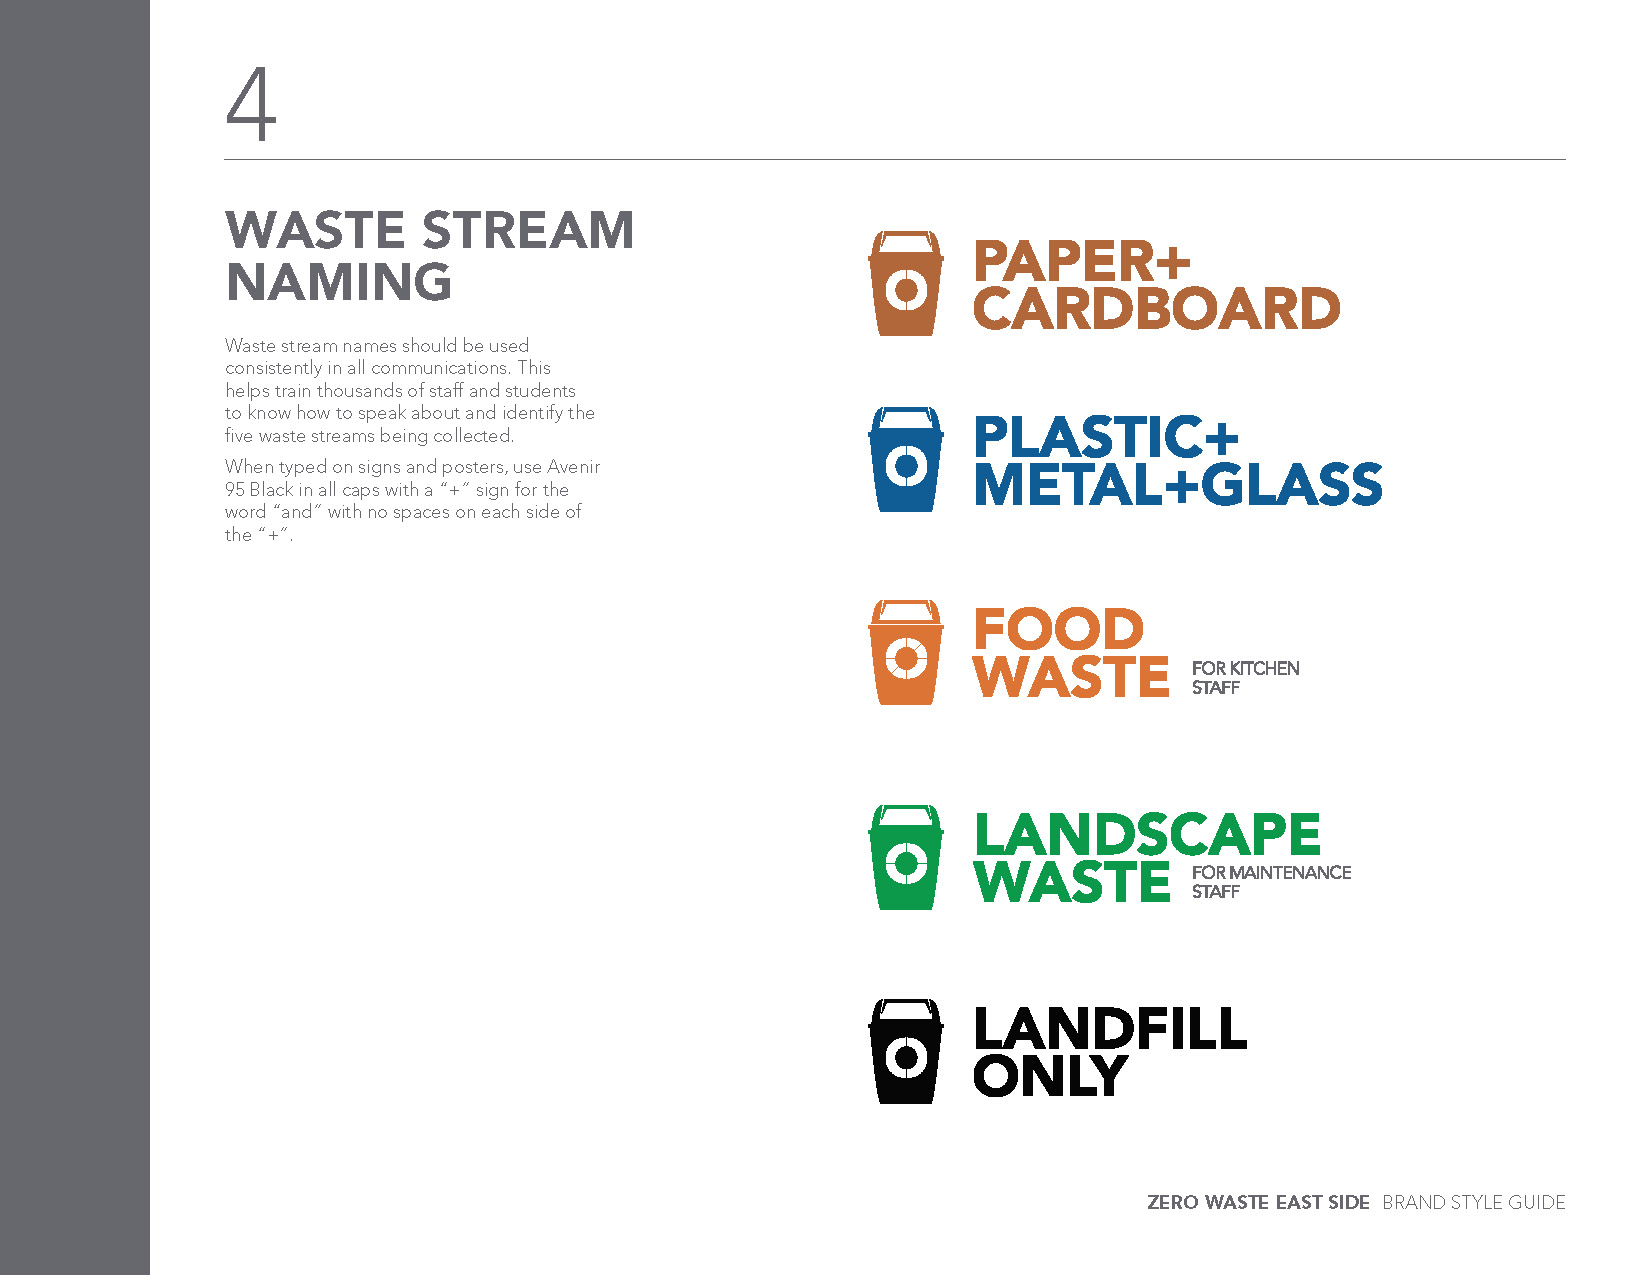 Page from the Zero Waste East Side brand style guide